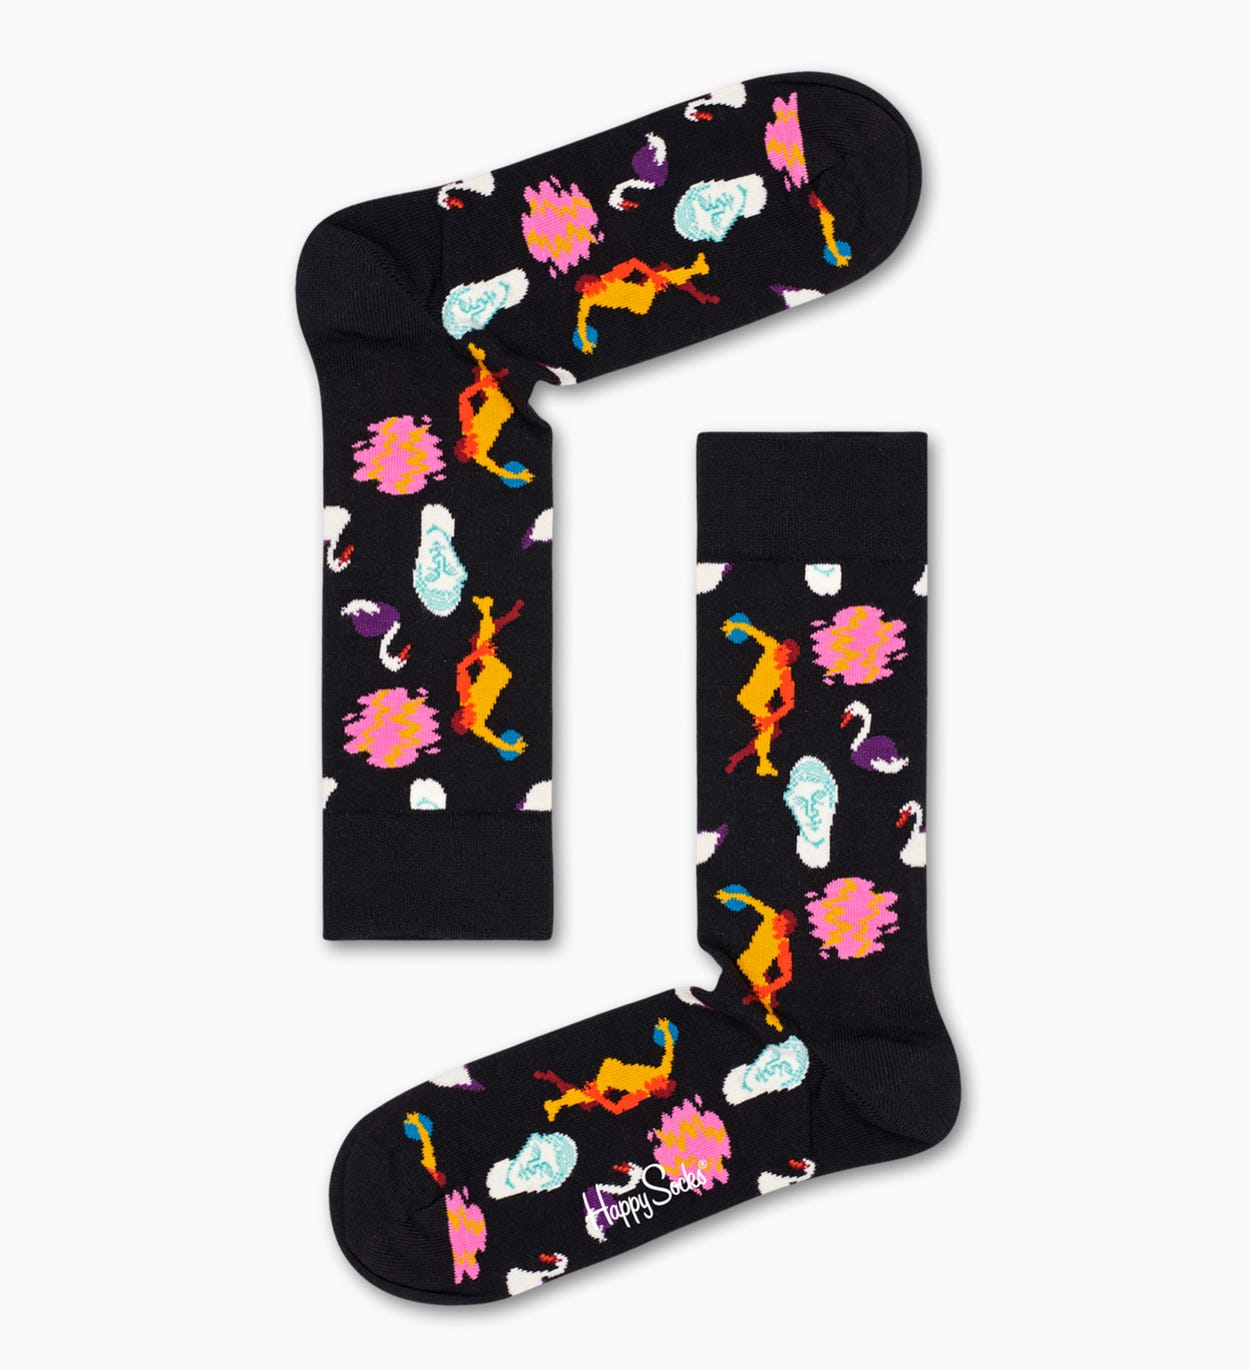 Patterned Black Socks: Park | Happy Socks